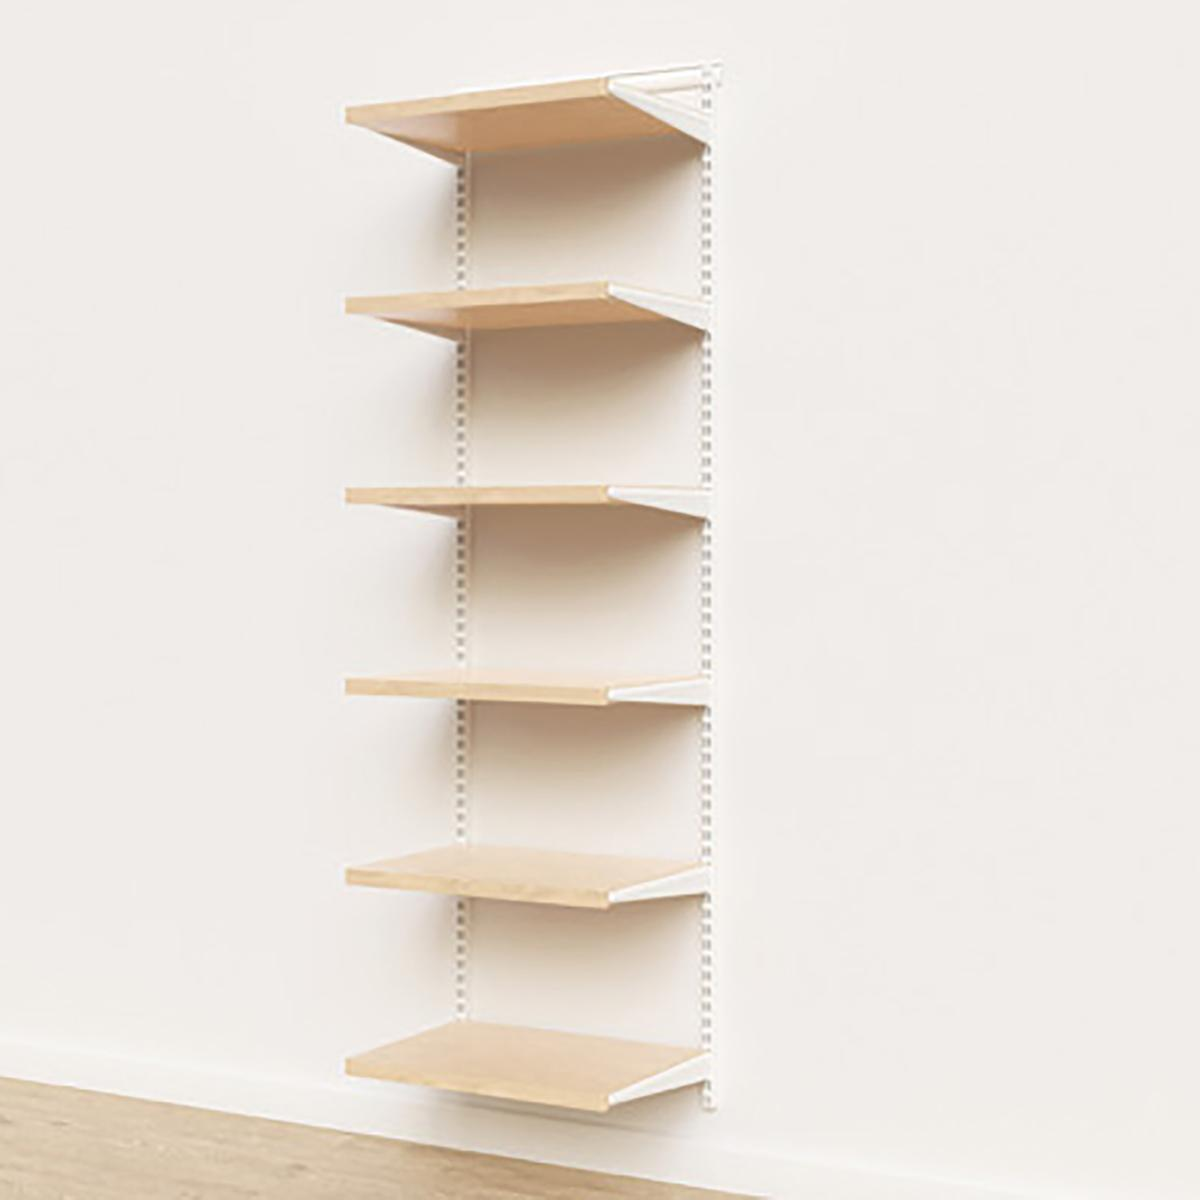 Elfa Décor 2' White & Birch Basic Shelving Units for Anywhere